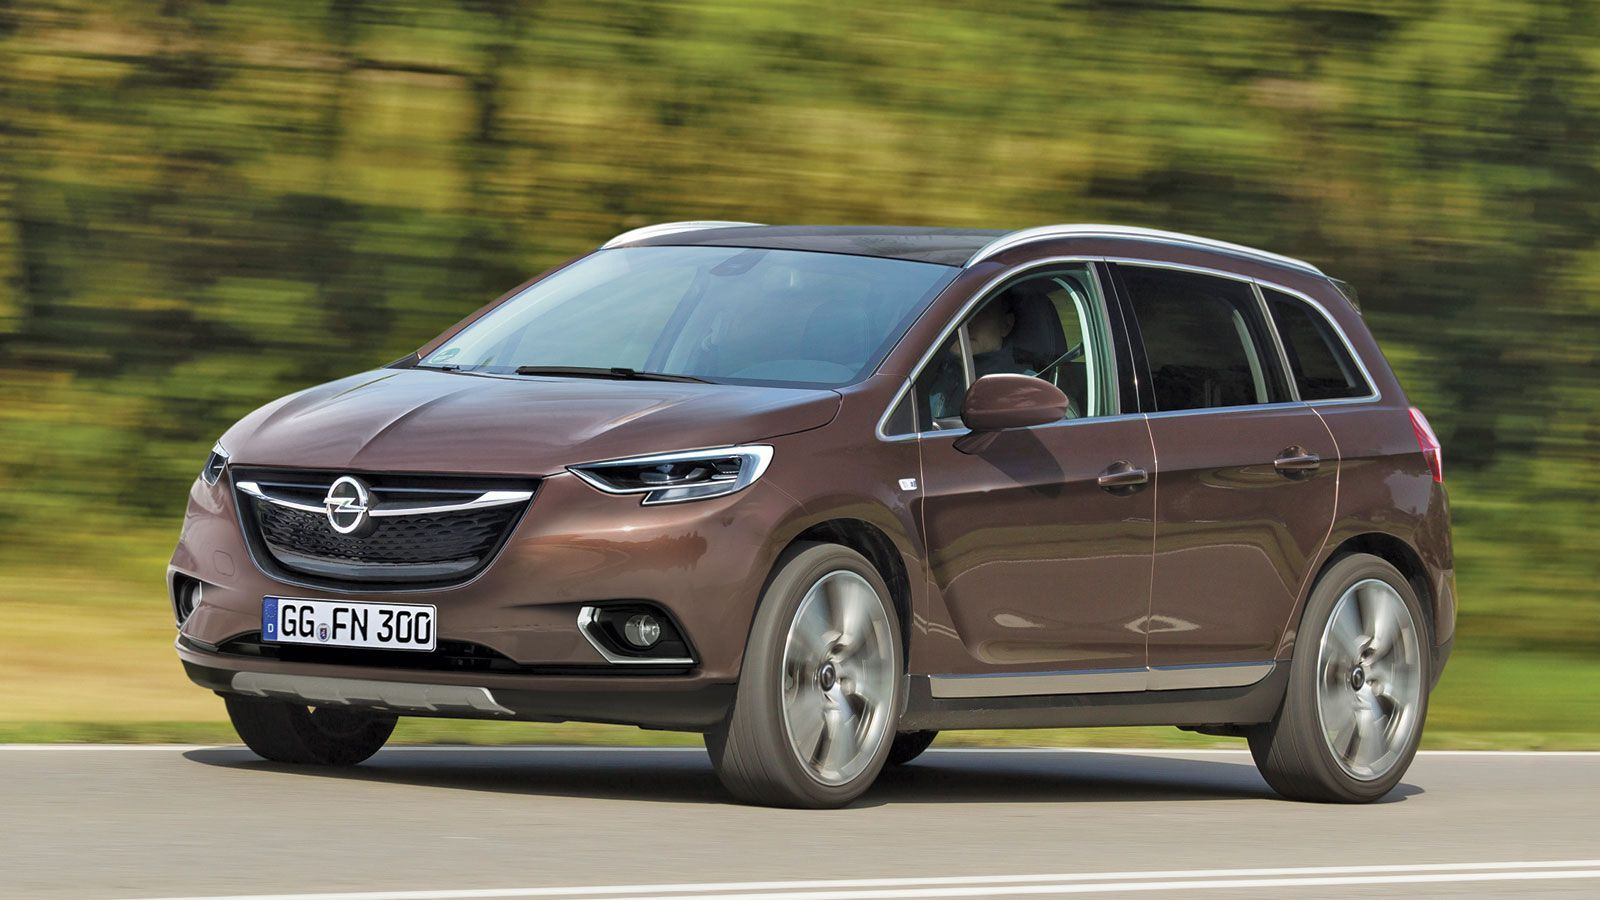 A New Opel Flagship Suv To Debut Before The End Of 2020 A